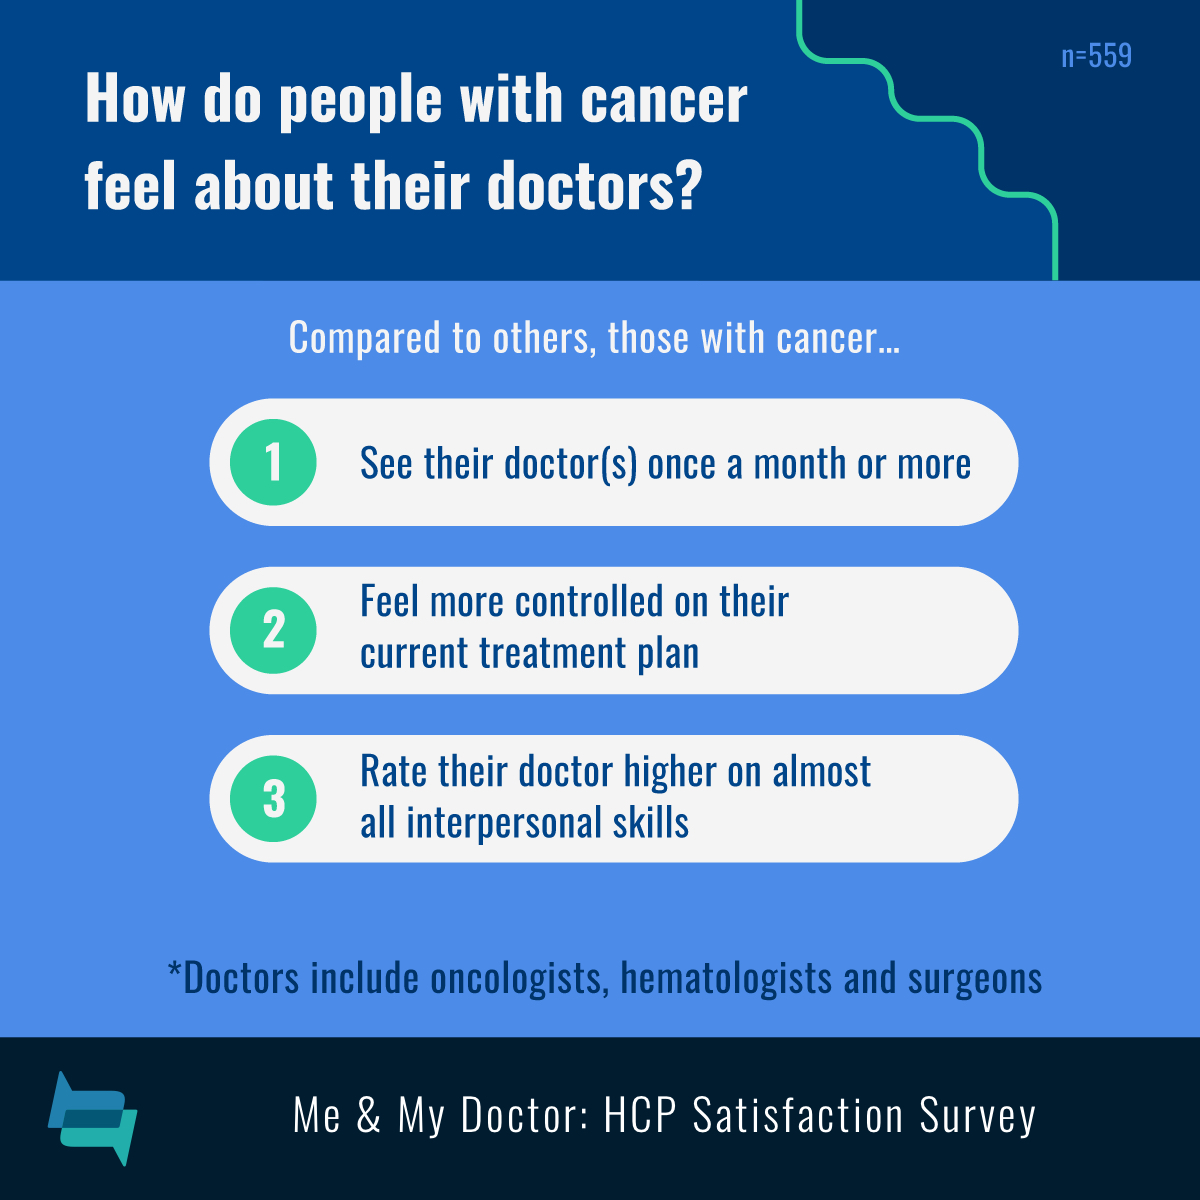 Cancer patients visit doctors more often, rate doctors higher on interpersonal skills, and feel more controlled on their <a href=